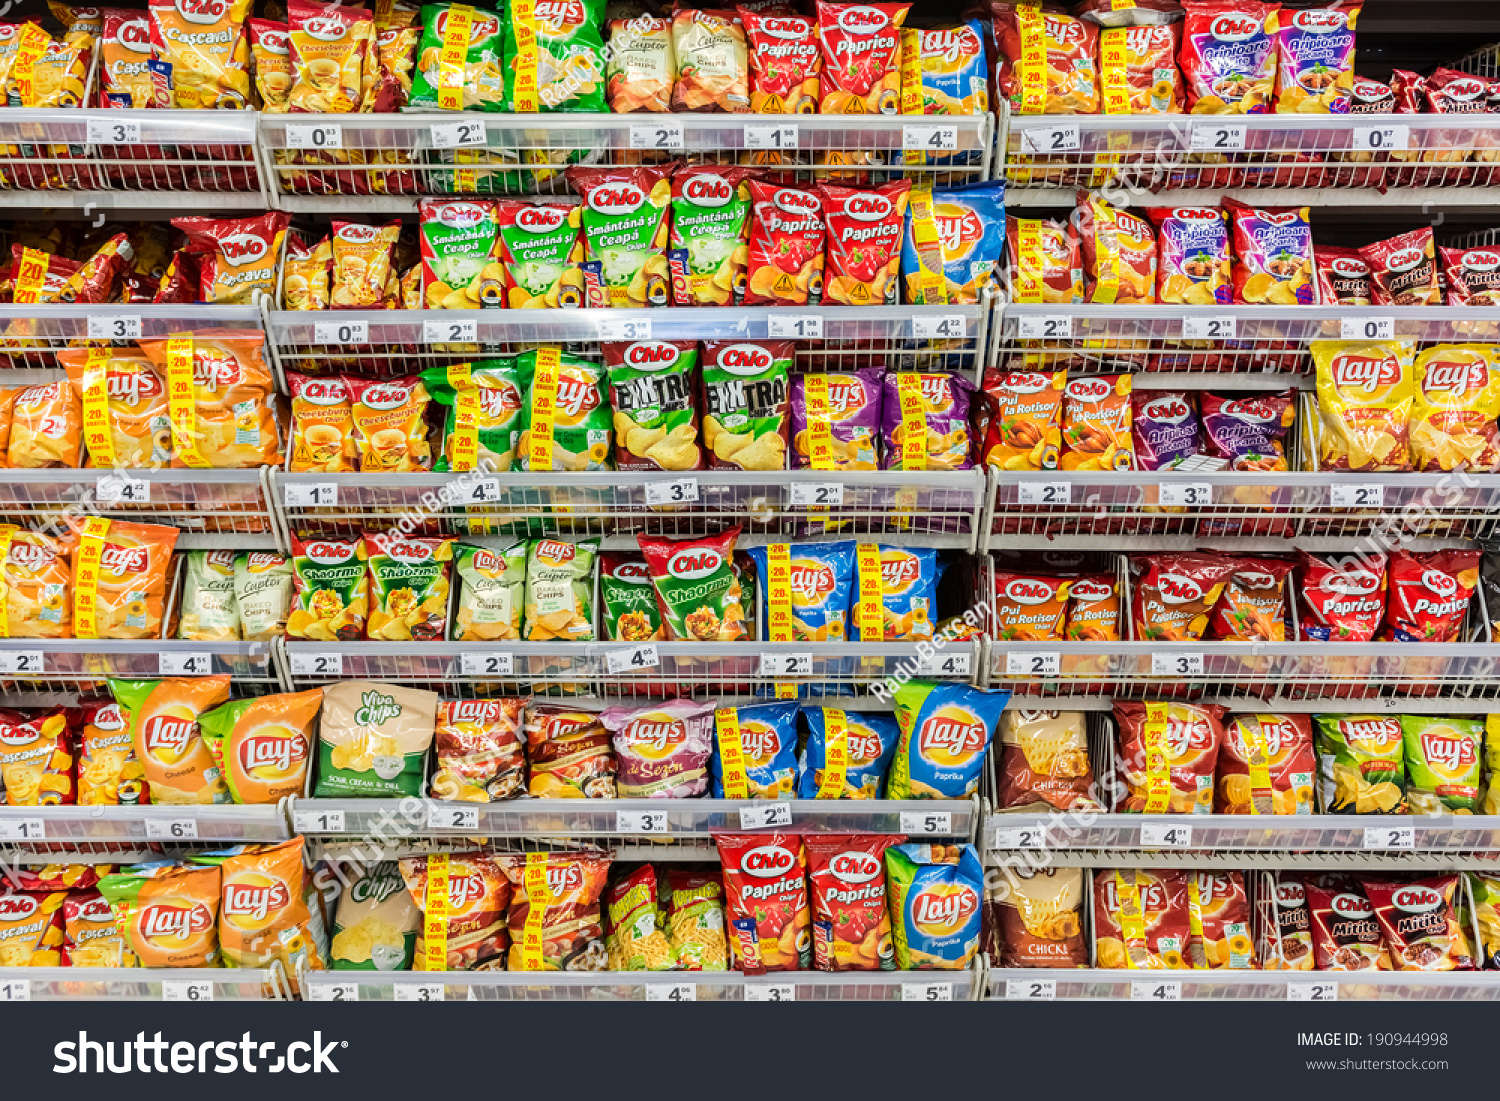 grocery shelves of processed foods pictures to pin on. Black Bedroom Furniture Sets. Home Design Ideas